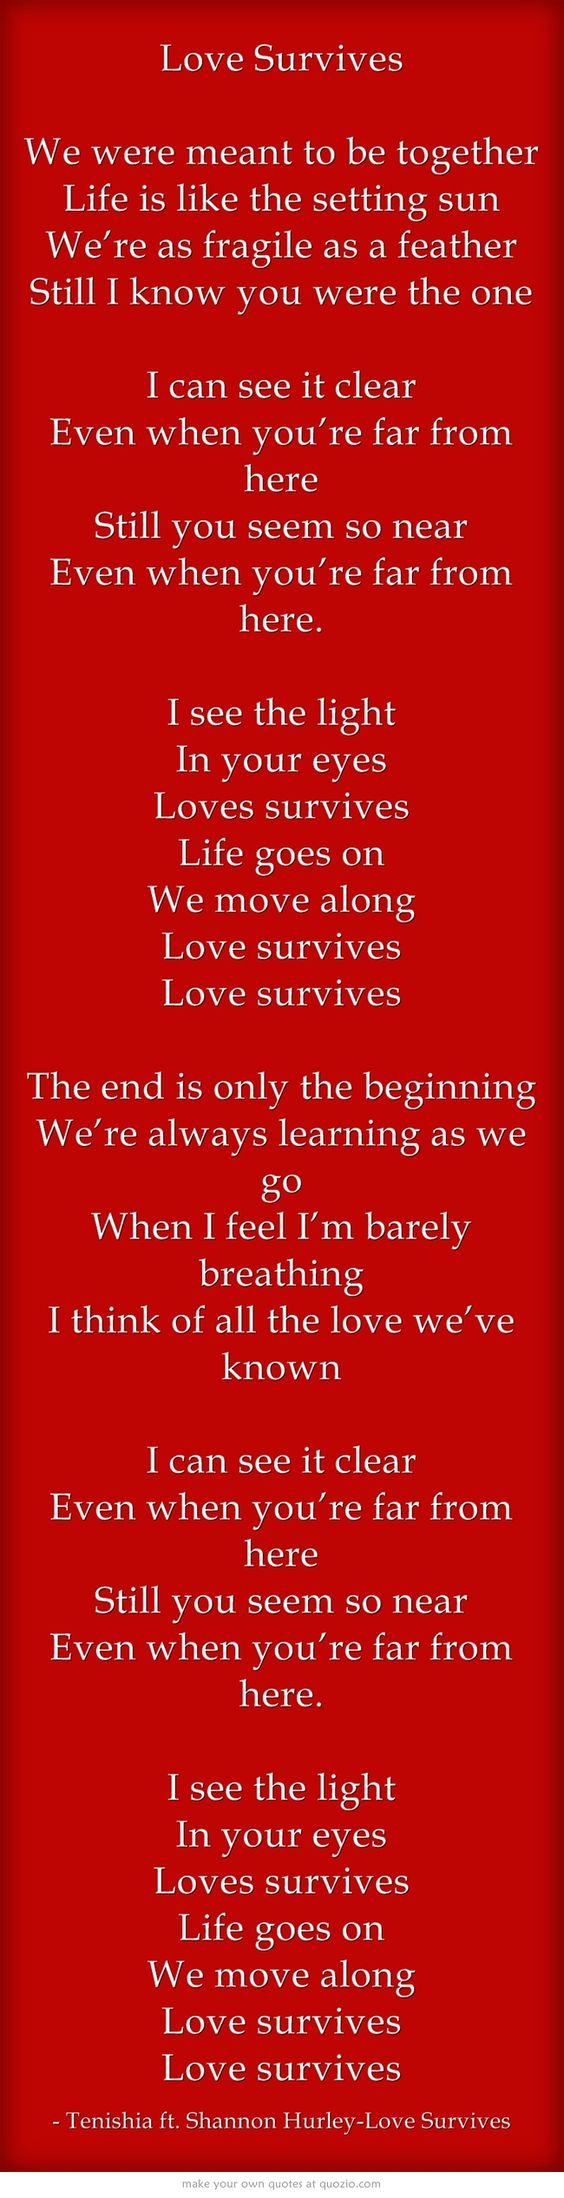 Tenishia ft. Shannon Hurley-Love Survives #lyrics #shannonhurley #music #tenishia #quotes #trance #edm